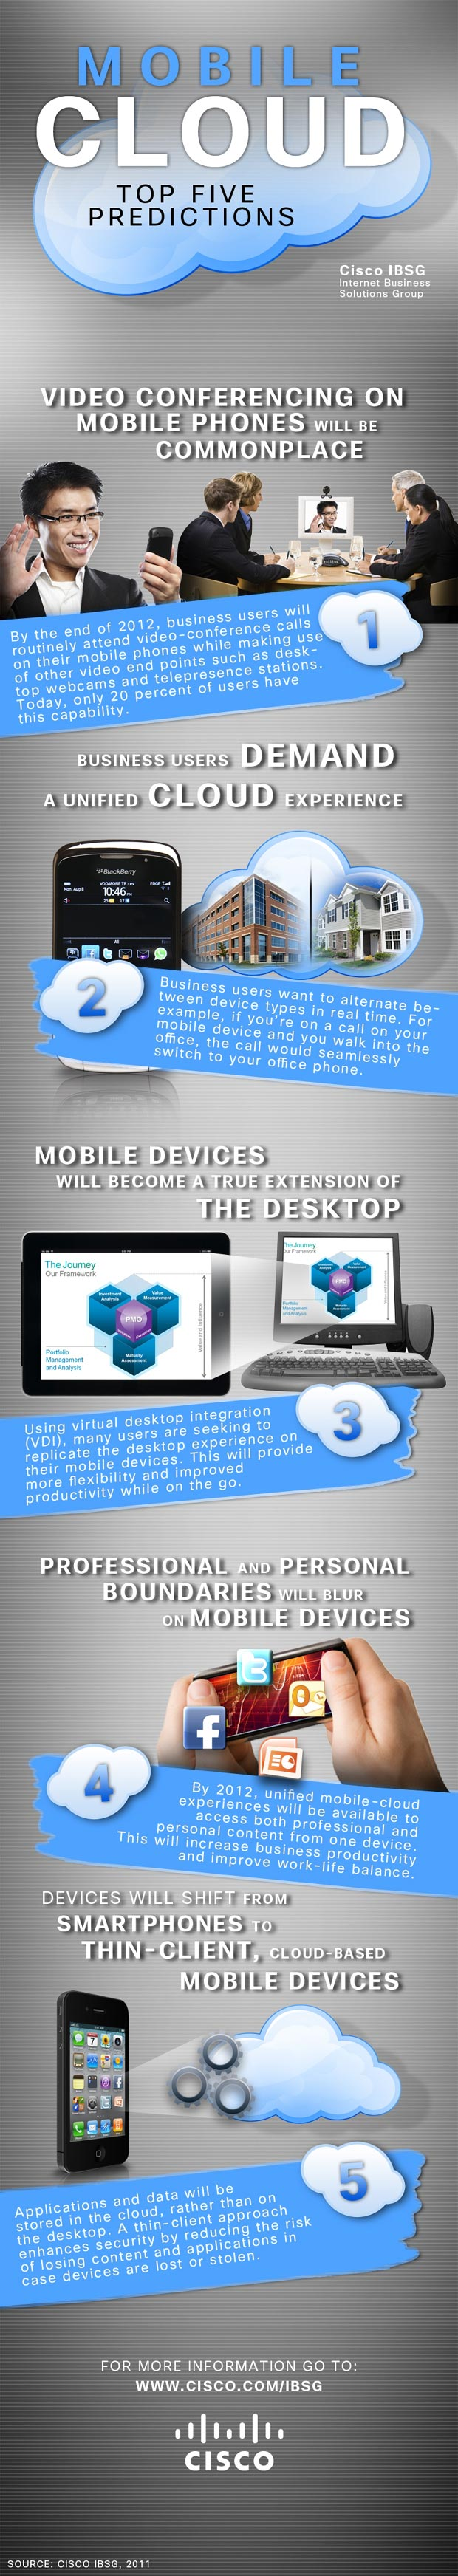 mobile cloud infographic